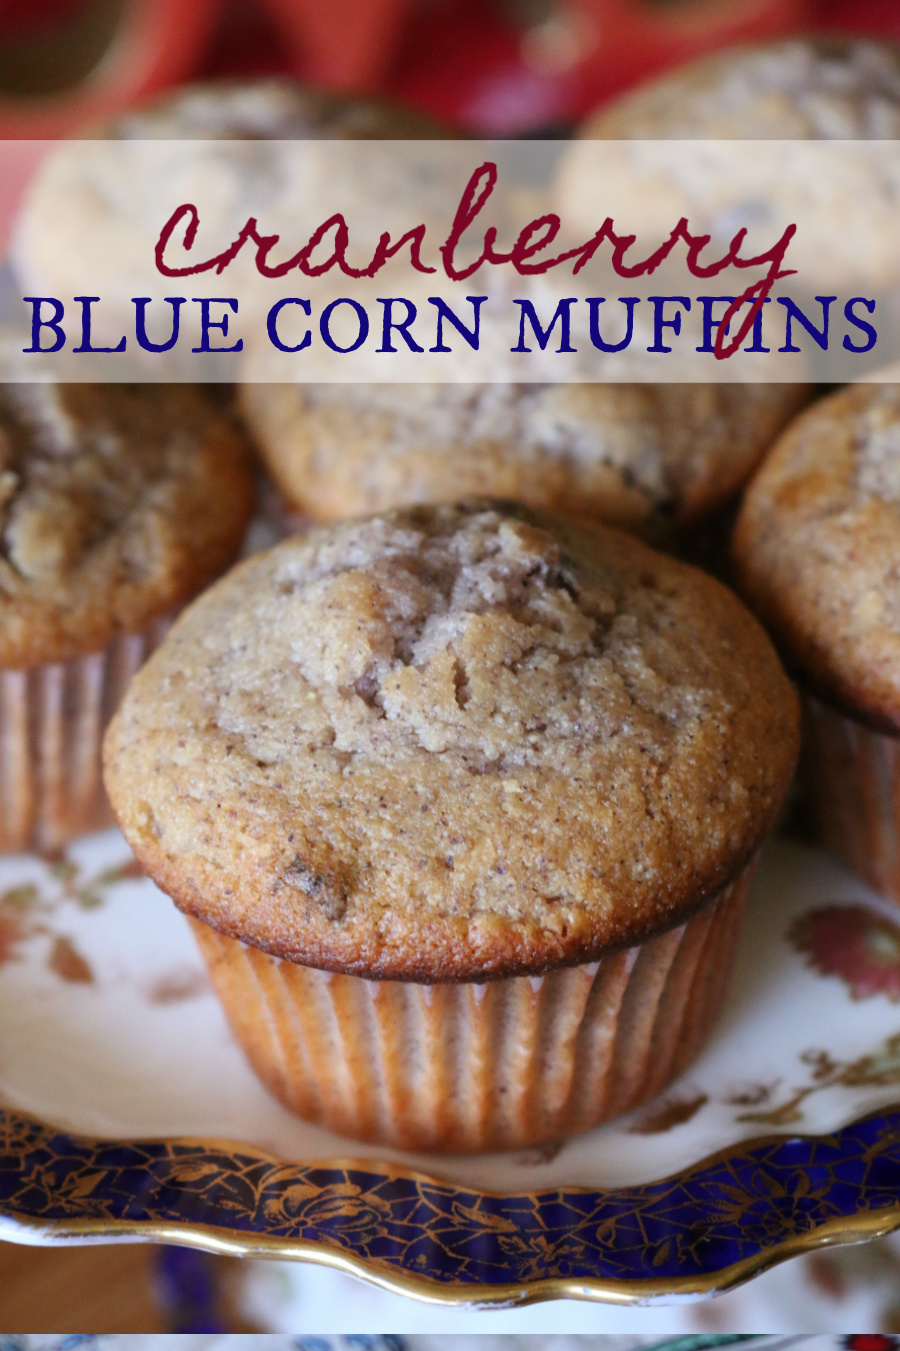 Cranberry Blue Corn Muffins CeceliasGoodStuff.com | Good Food for Good People